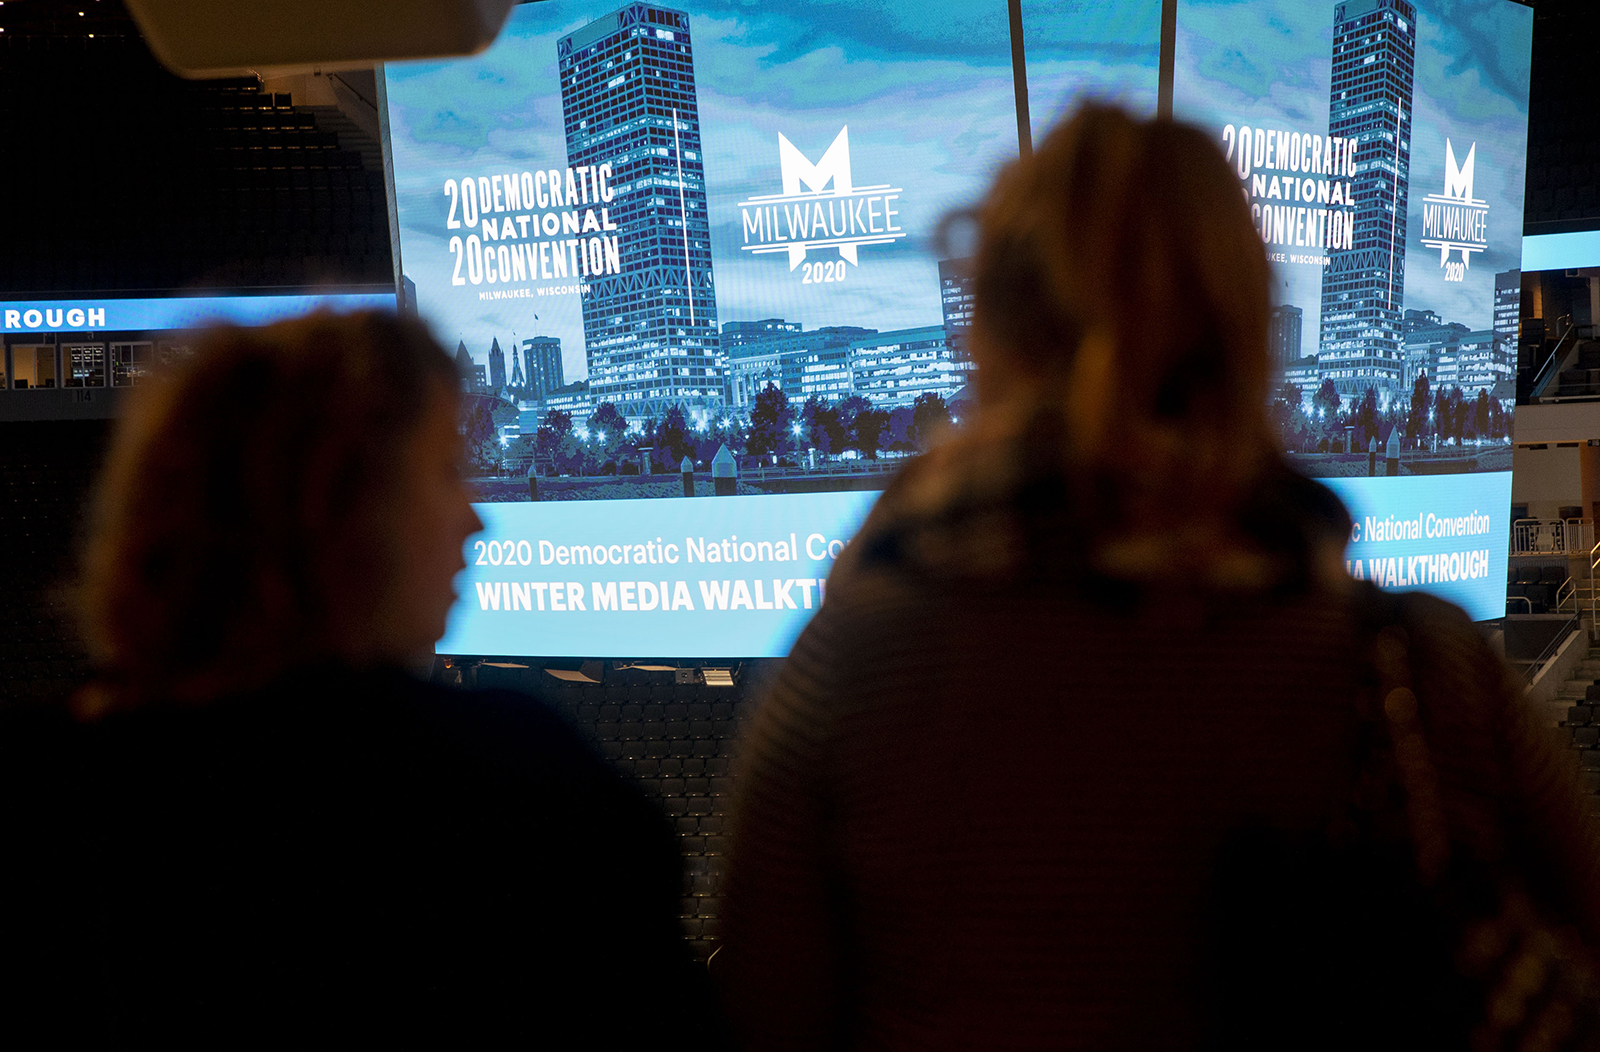 Signage is displayed during a media walkthrough for the upcoming Democratic National Convention at the Fiserv Forum in Milwaukee, on Tuesday, January 7.